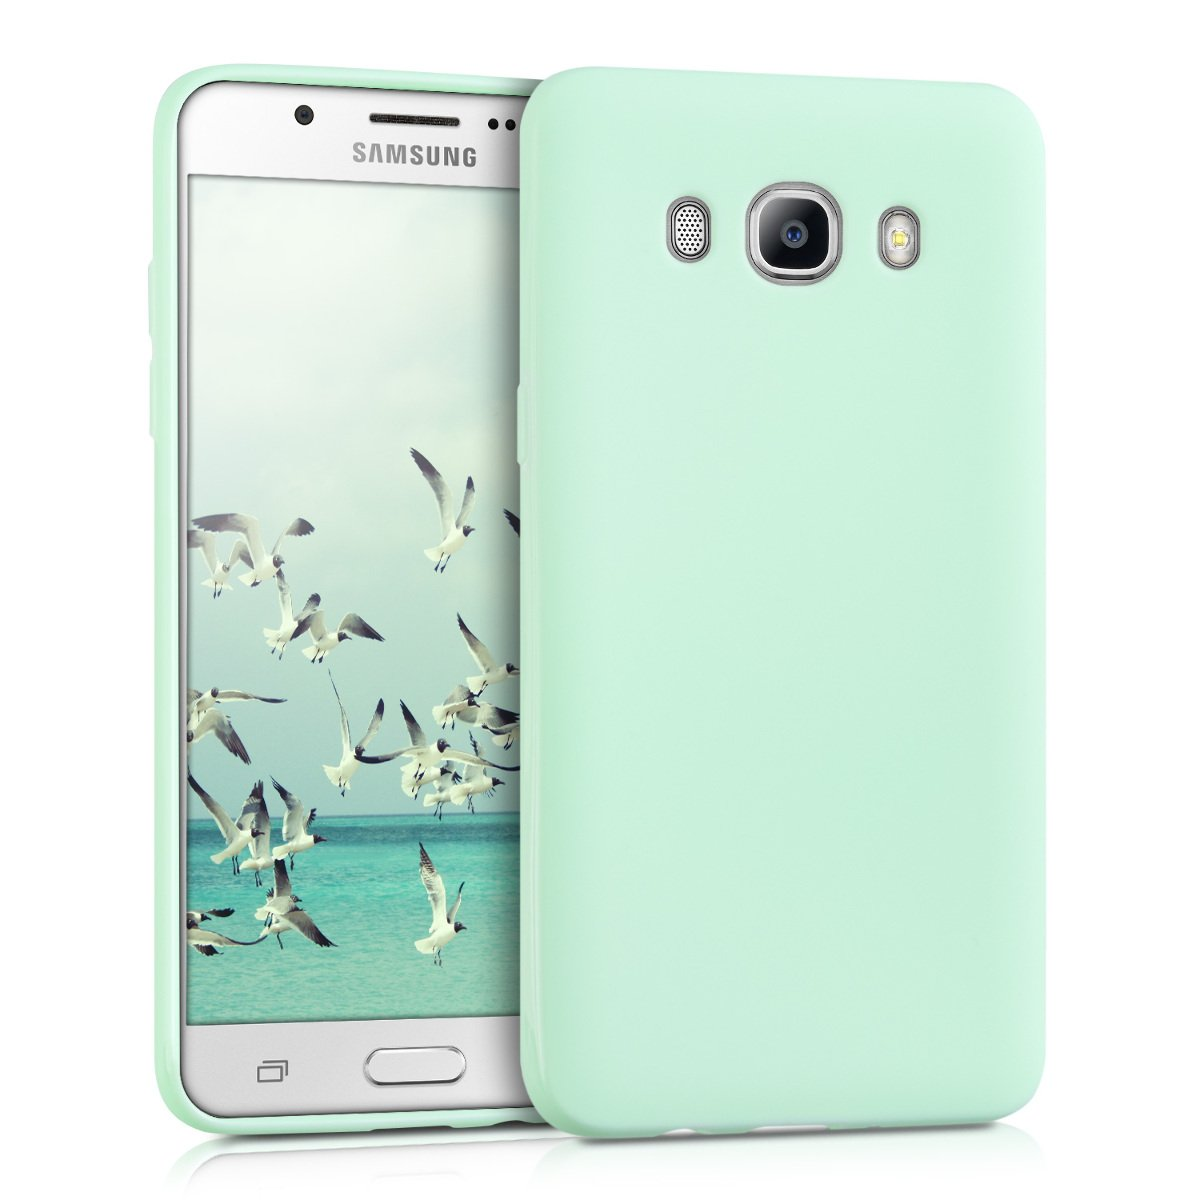 kwmobile TPU Silicone Case for Samsung Galaxy J5 (2016) DUOS - Soft Flexible Shock Absorbent Protective Phone Cover - Mint Matte